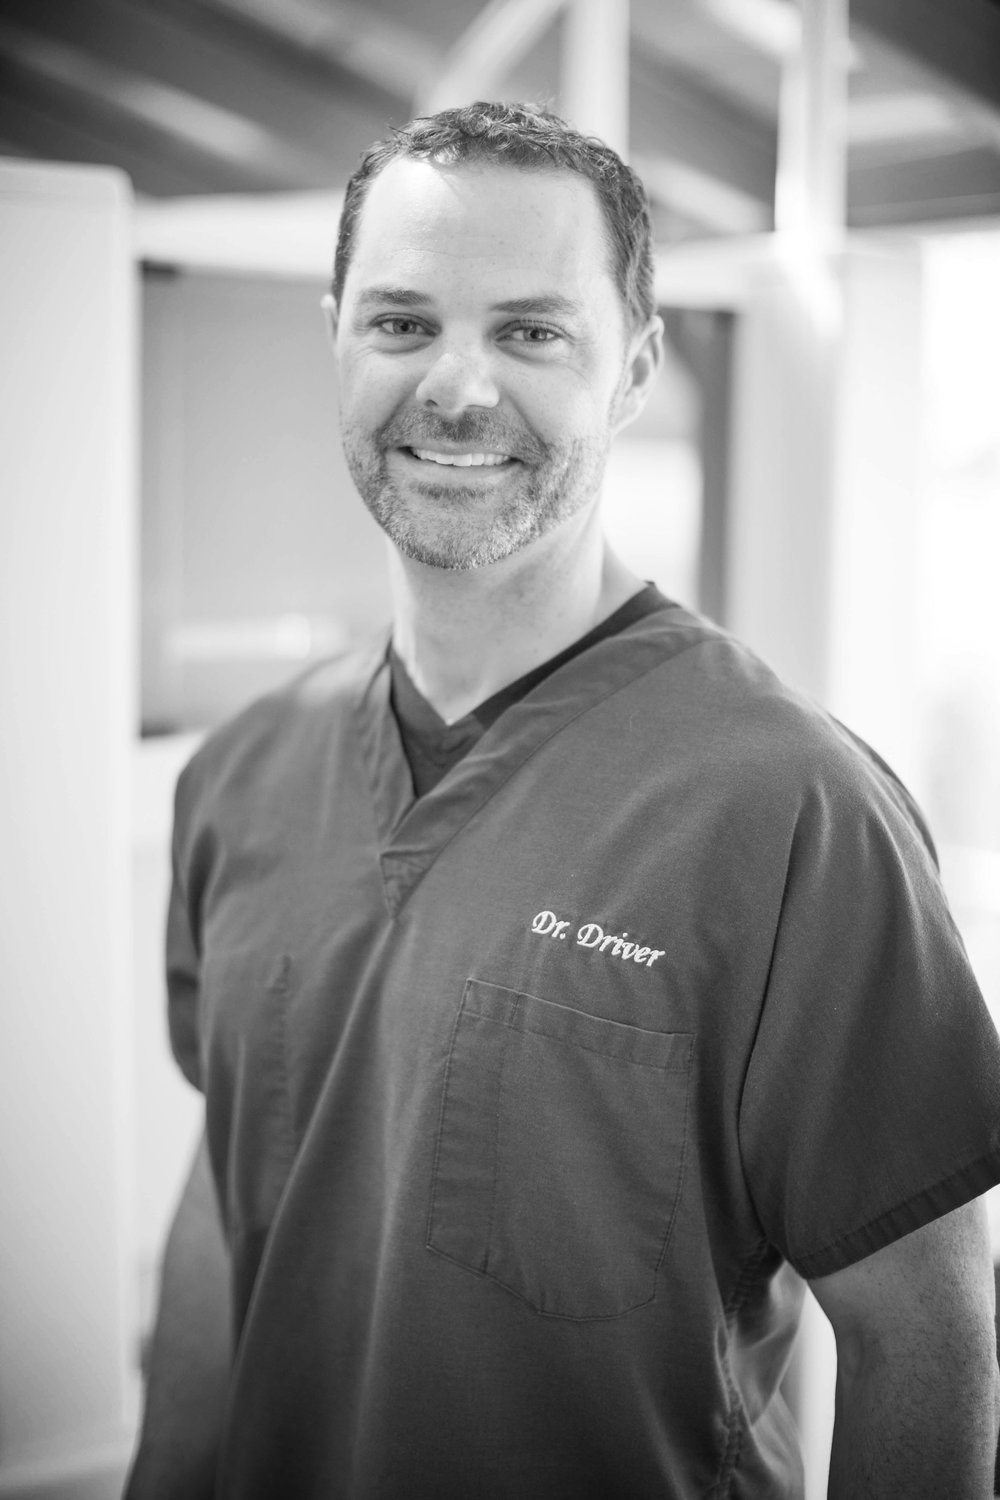 Dr. Eric Driver is a dental implant expert in San Diego with years of experience performing dental implants to replace missing teeth or damaged teeth and the Hybrid4 Fixed Bridge procedure to replace dentures with beautiful new teeth.